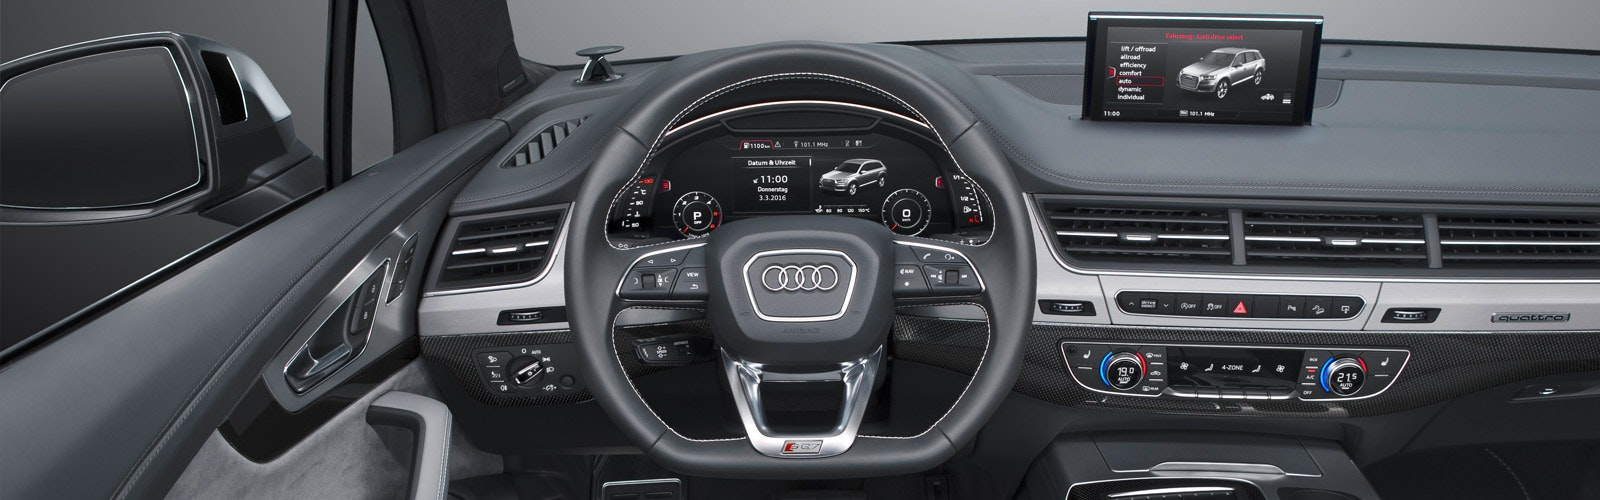 New Audi Sq7 Suv Price Specs And Release Date Carwow